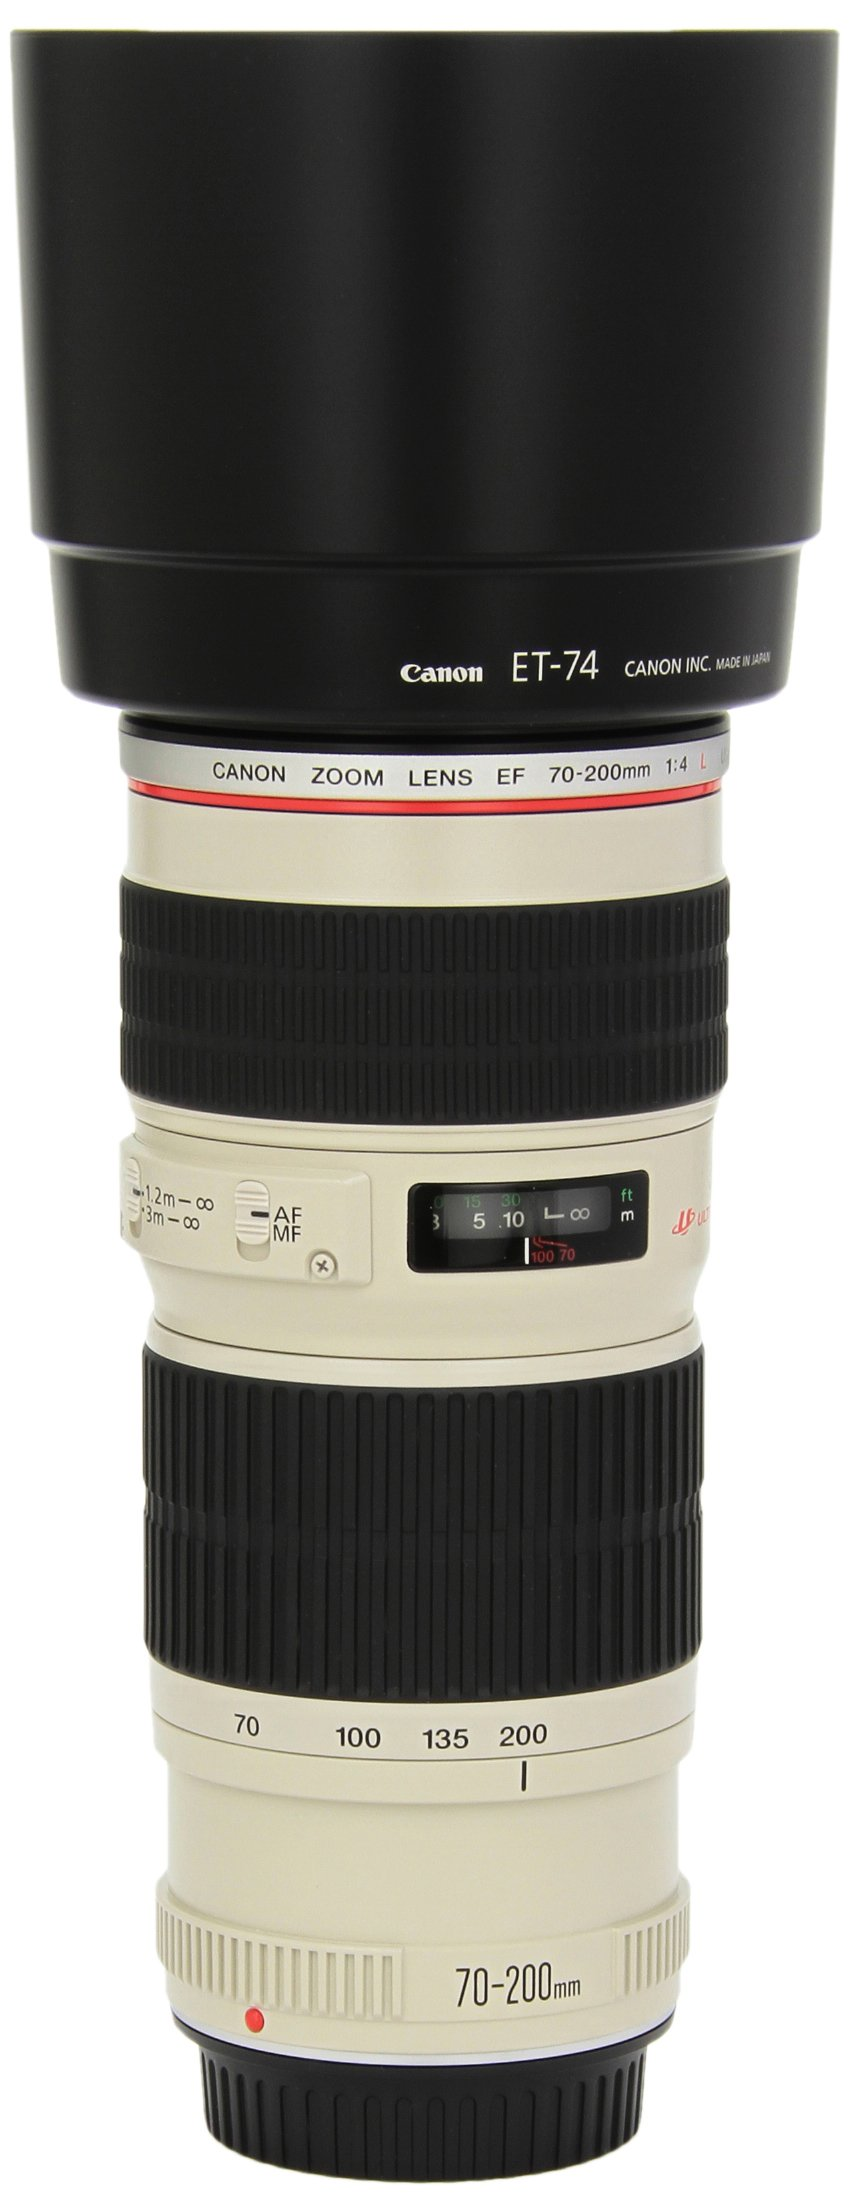 Canon EF 70-200mm f/4L USM Telephoto Zoom Lens for Canon SLR Cameras